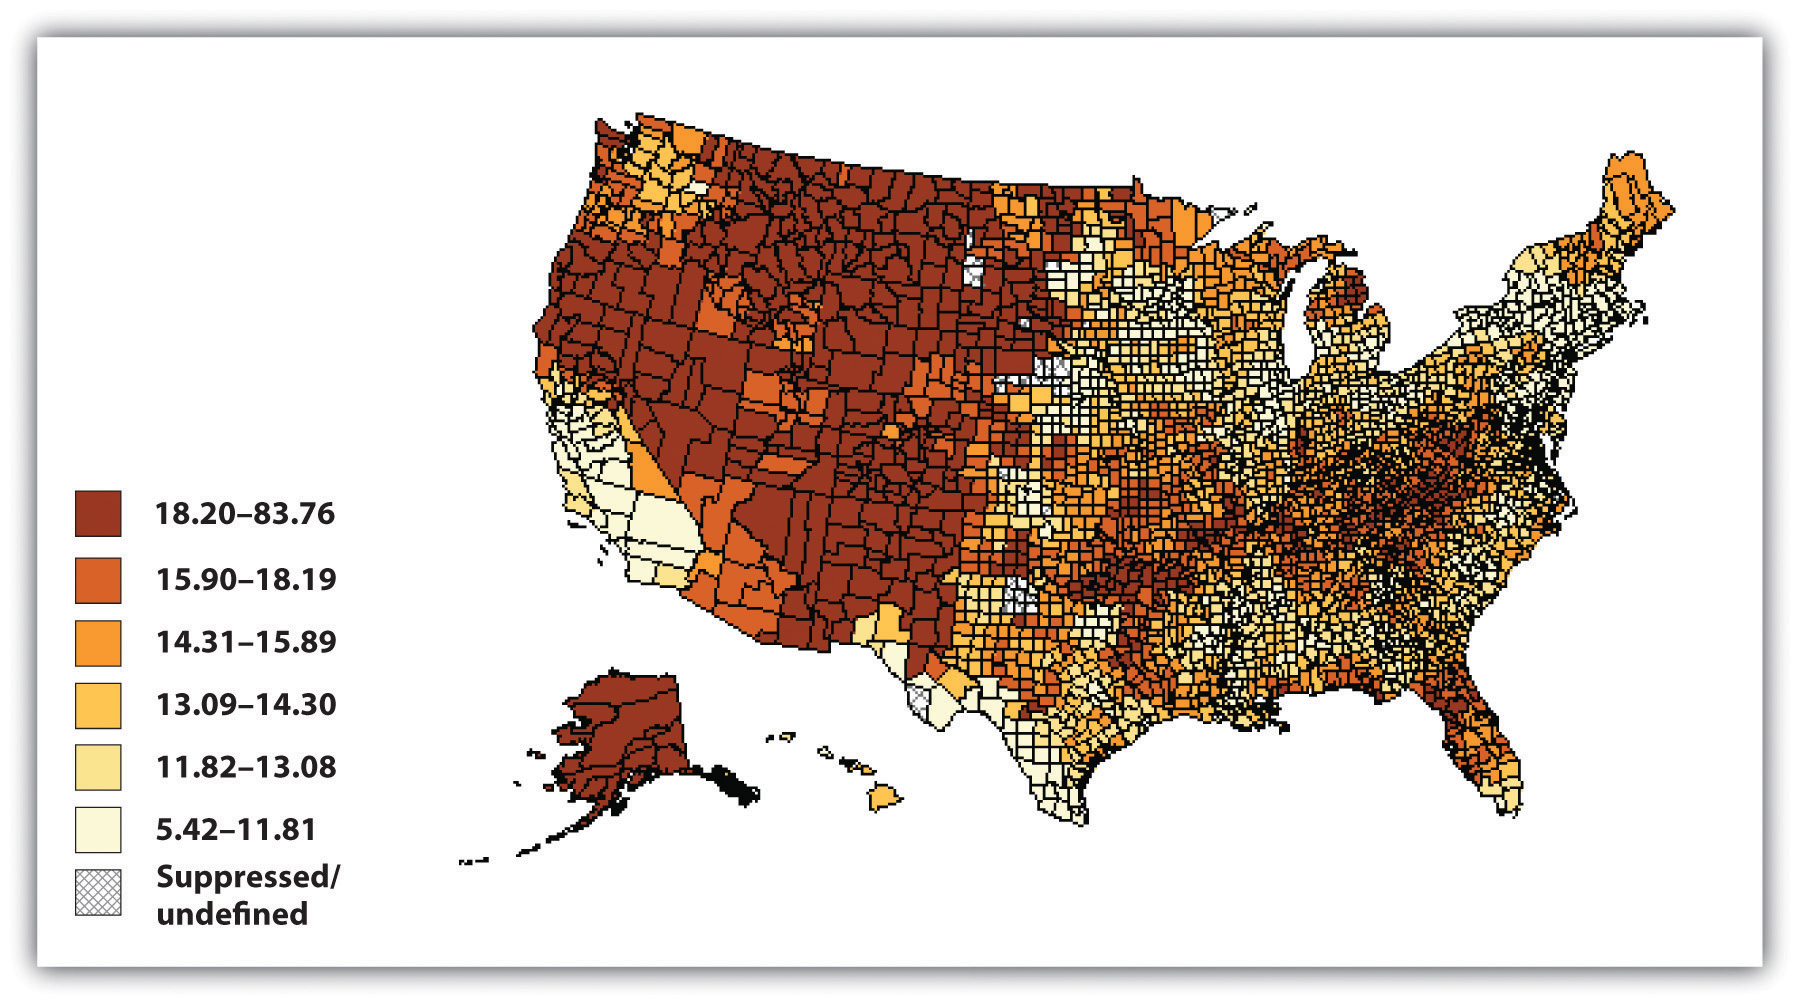 US Suicide Rates, 2000-2006. The highest rates of suicide are in Alaska and the western half of the US, besides much of California